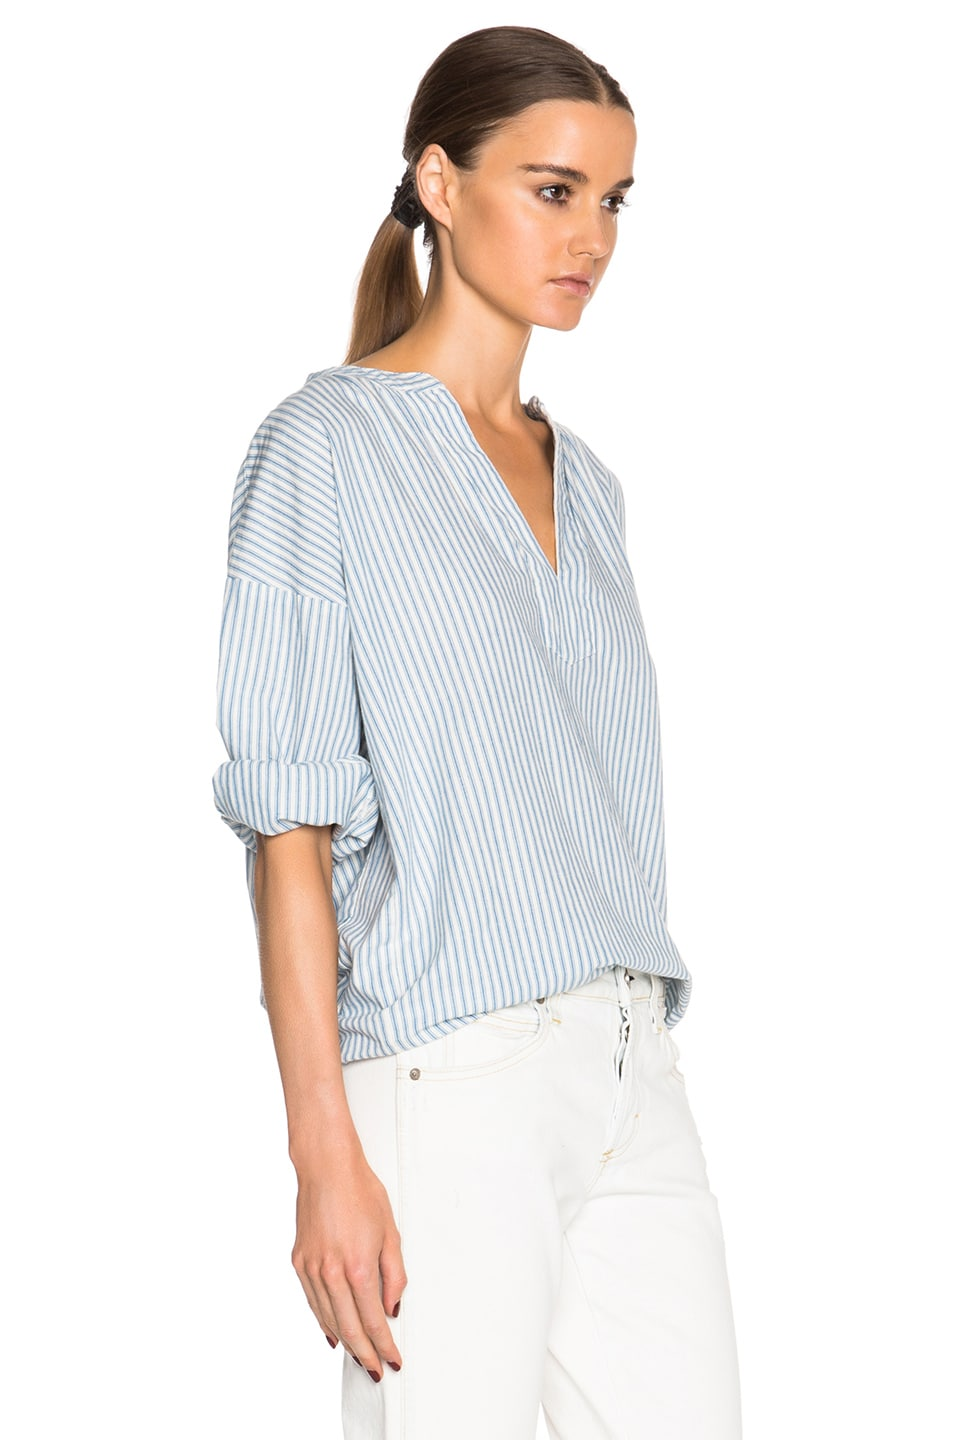 Image 3 of The Great Easy Tunic Top in Blue Mattress Stripe